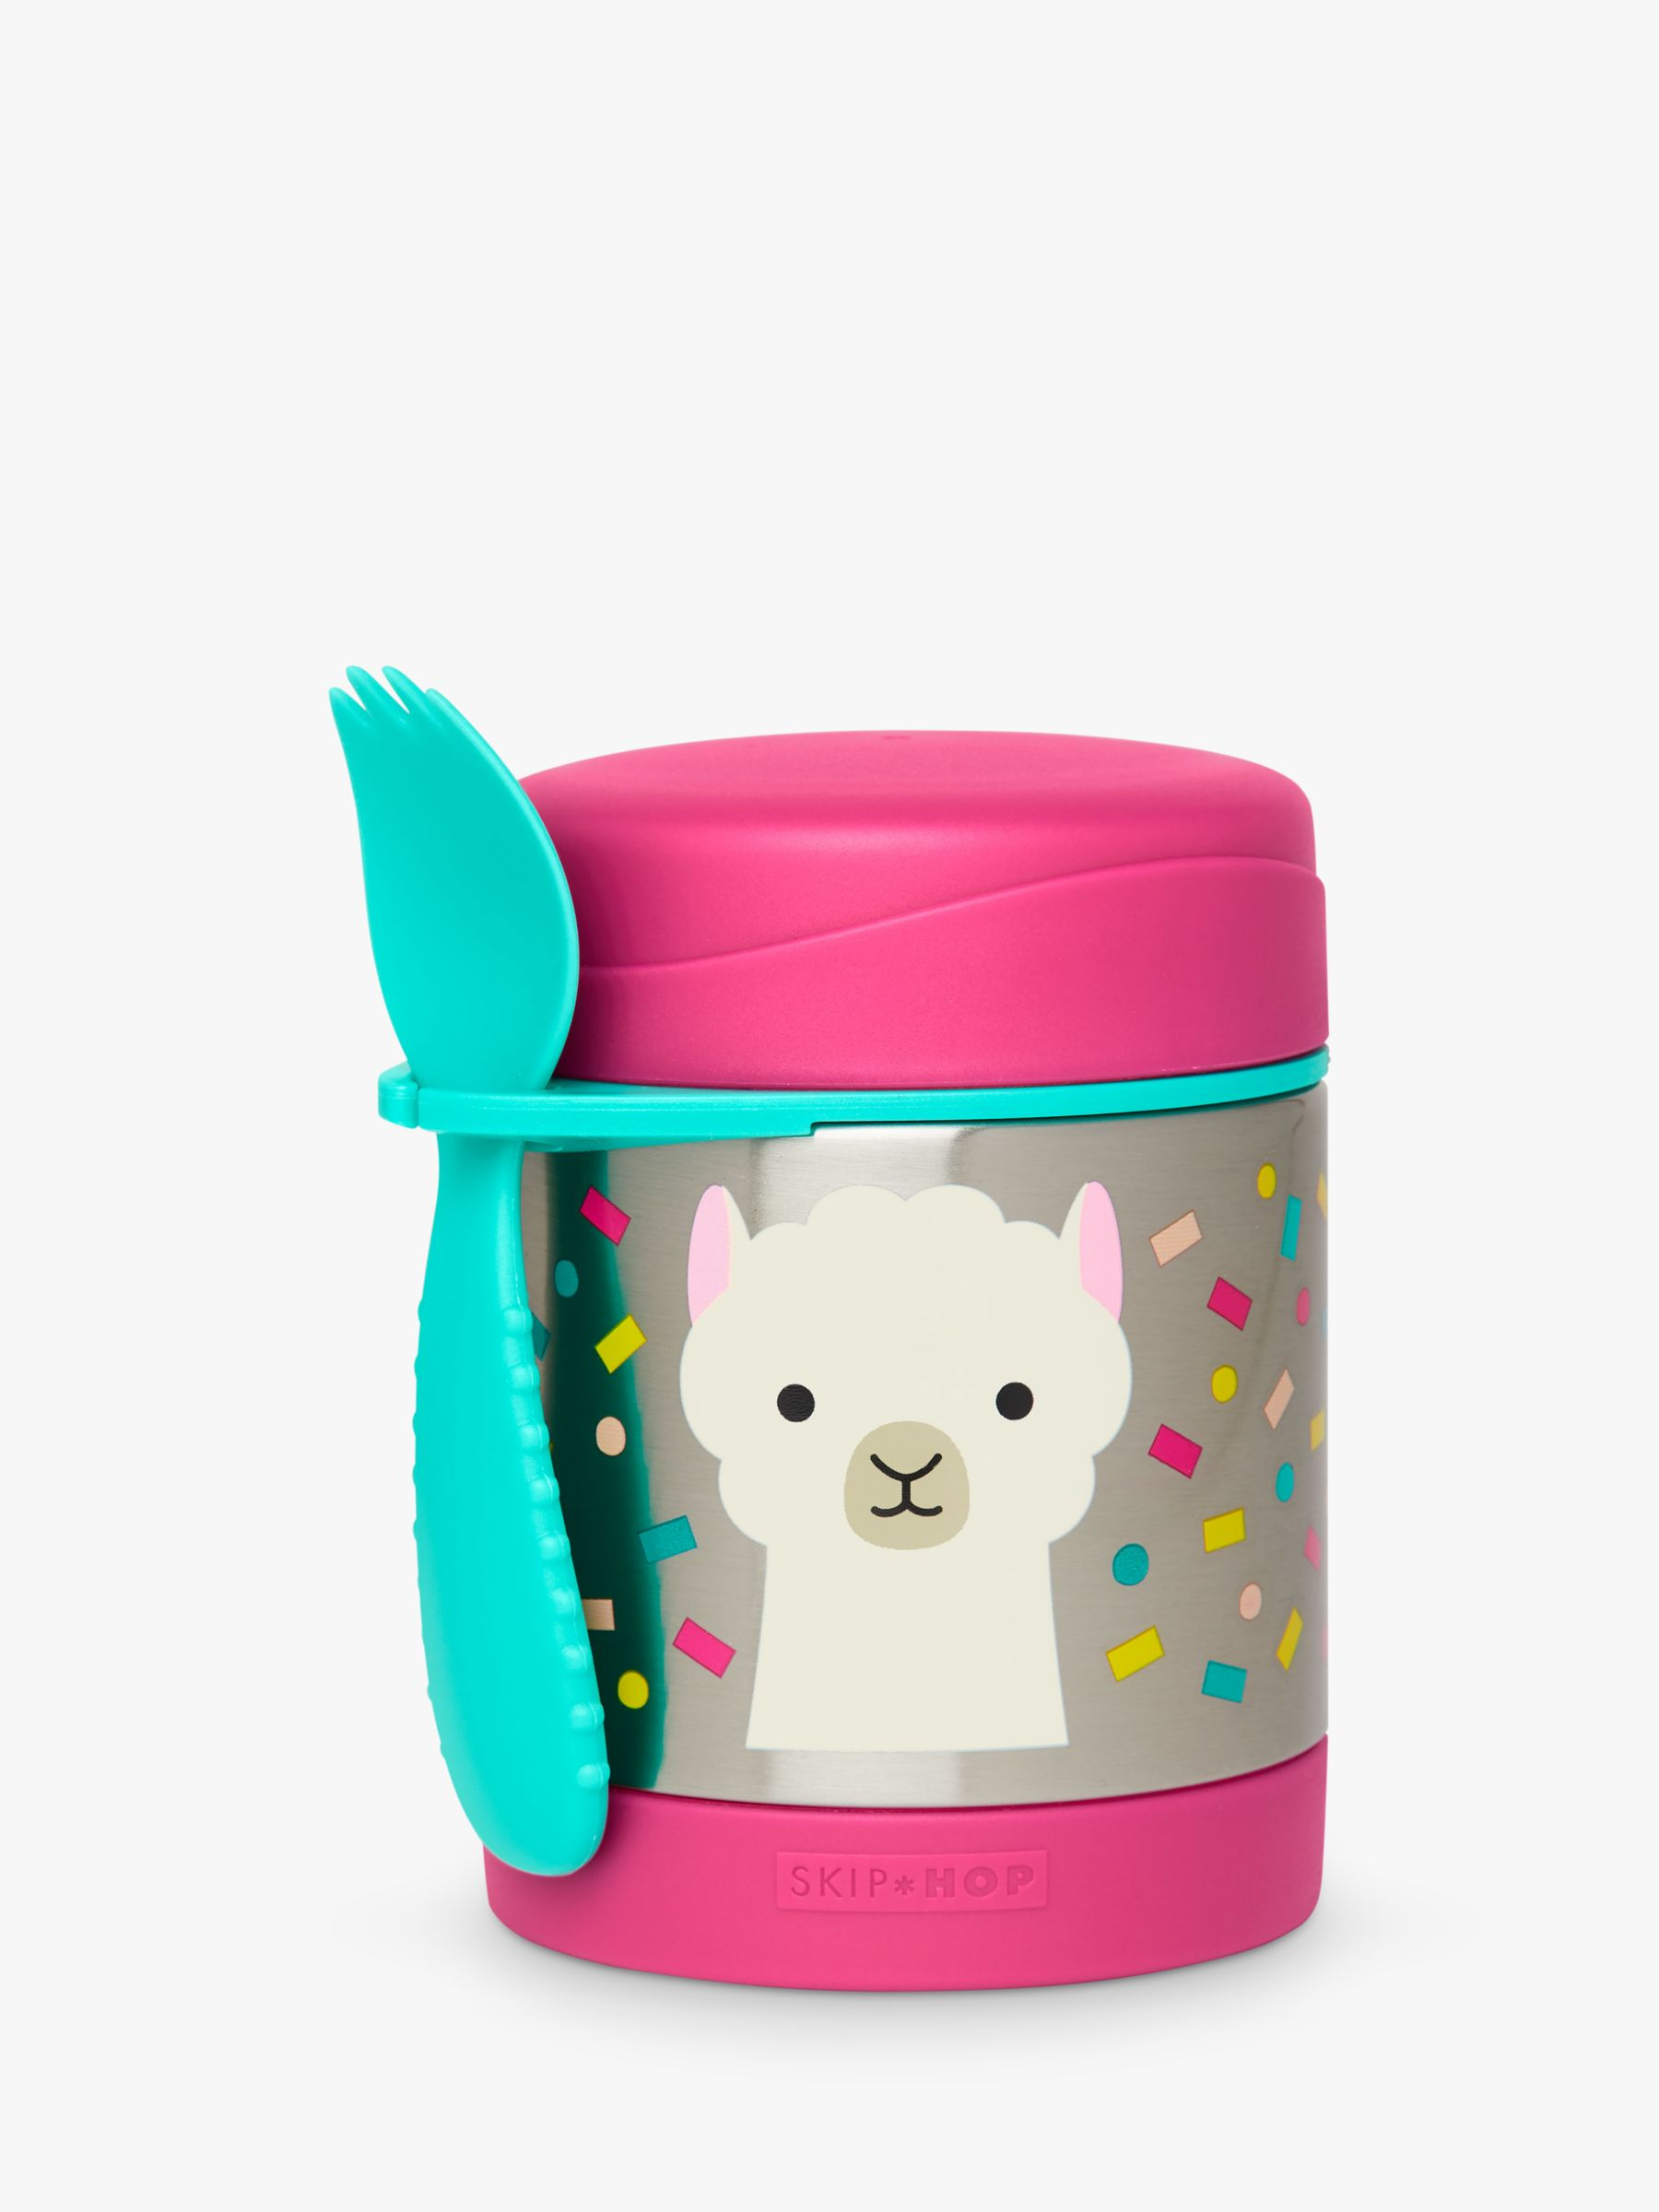 Skip Hop Skip Hop Zoo Insulated Food Jar, Llama